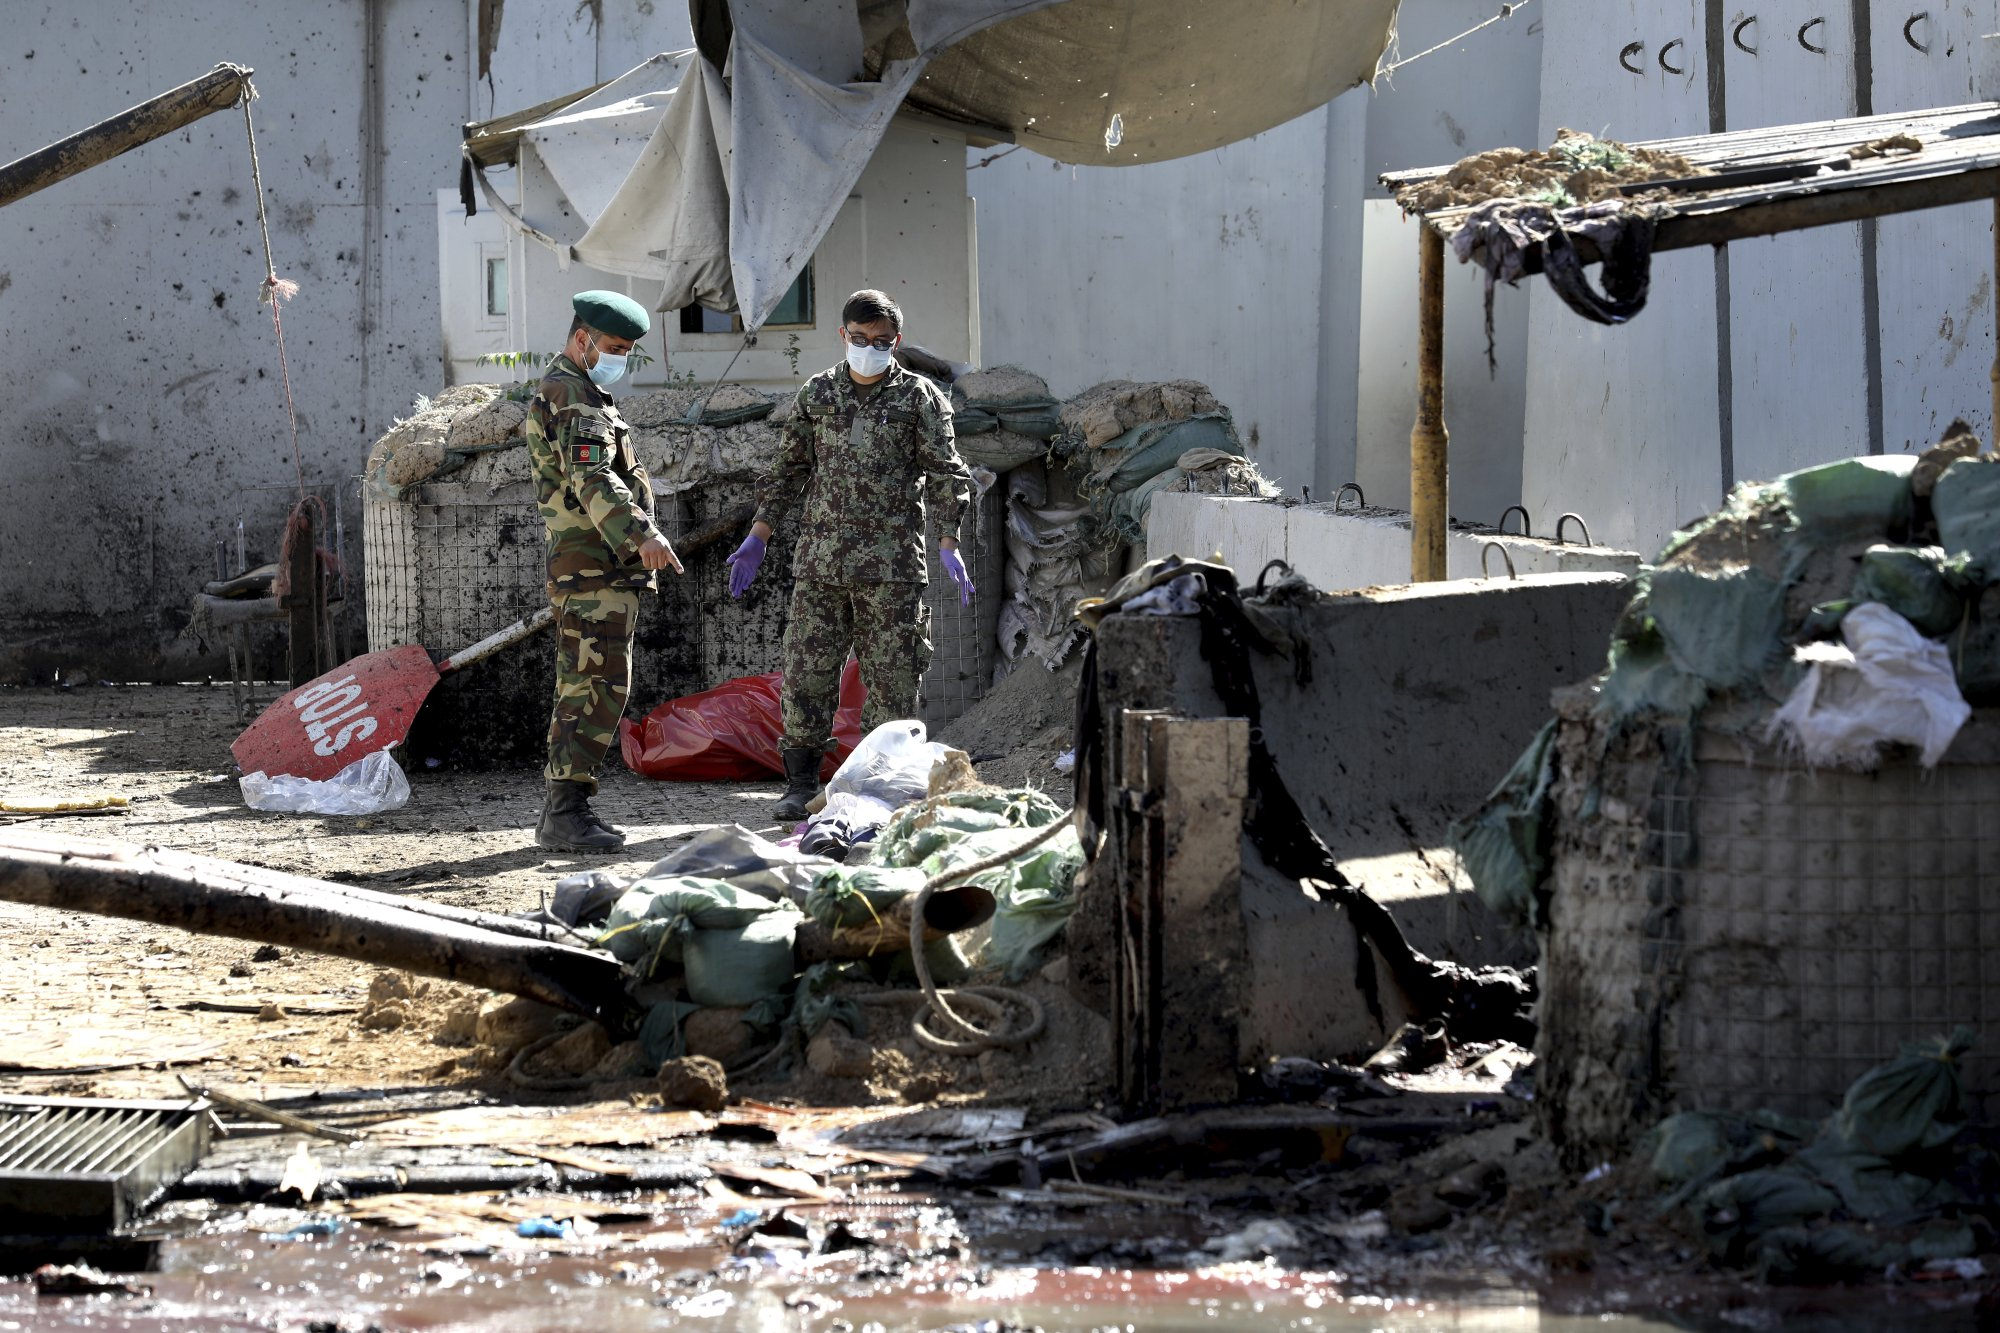 The Latest: Official says at least 22 killed in Kabul attack